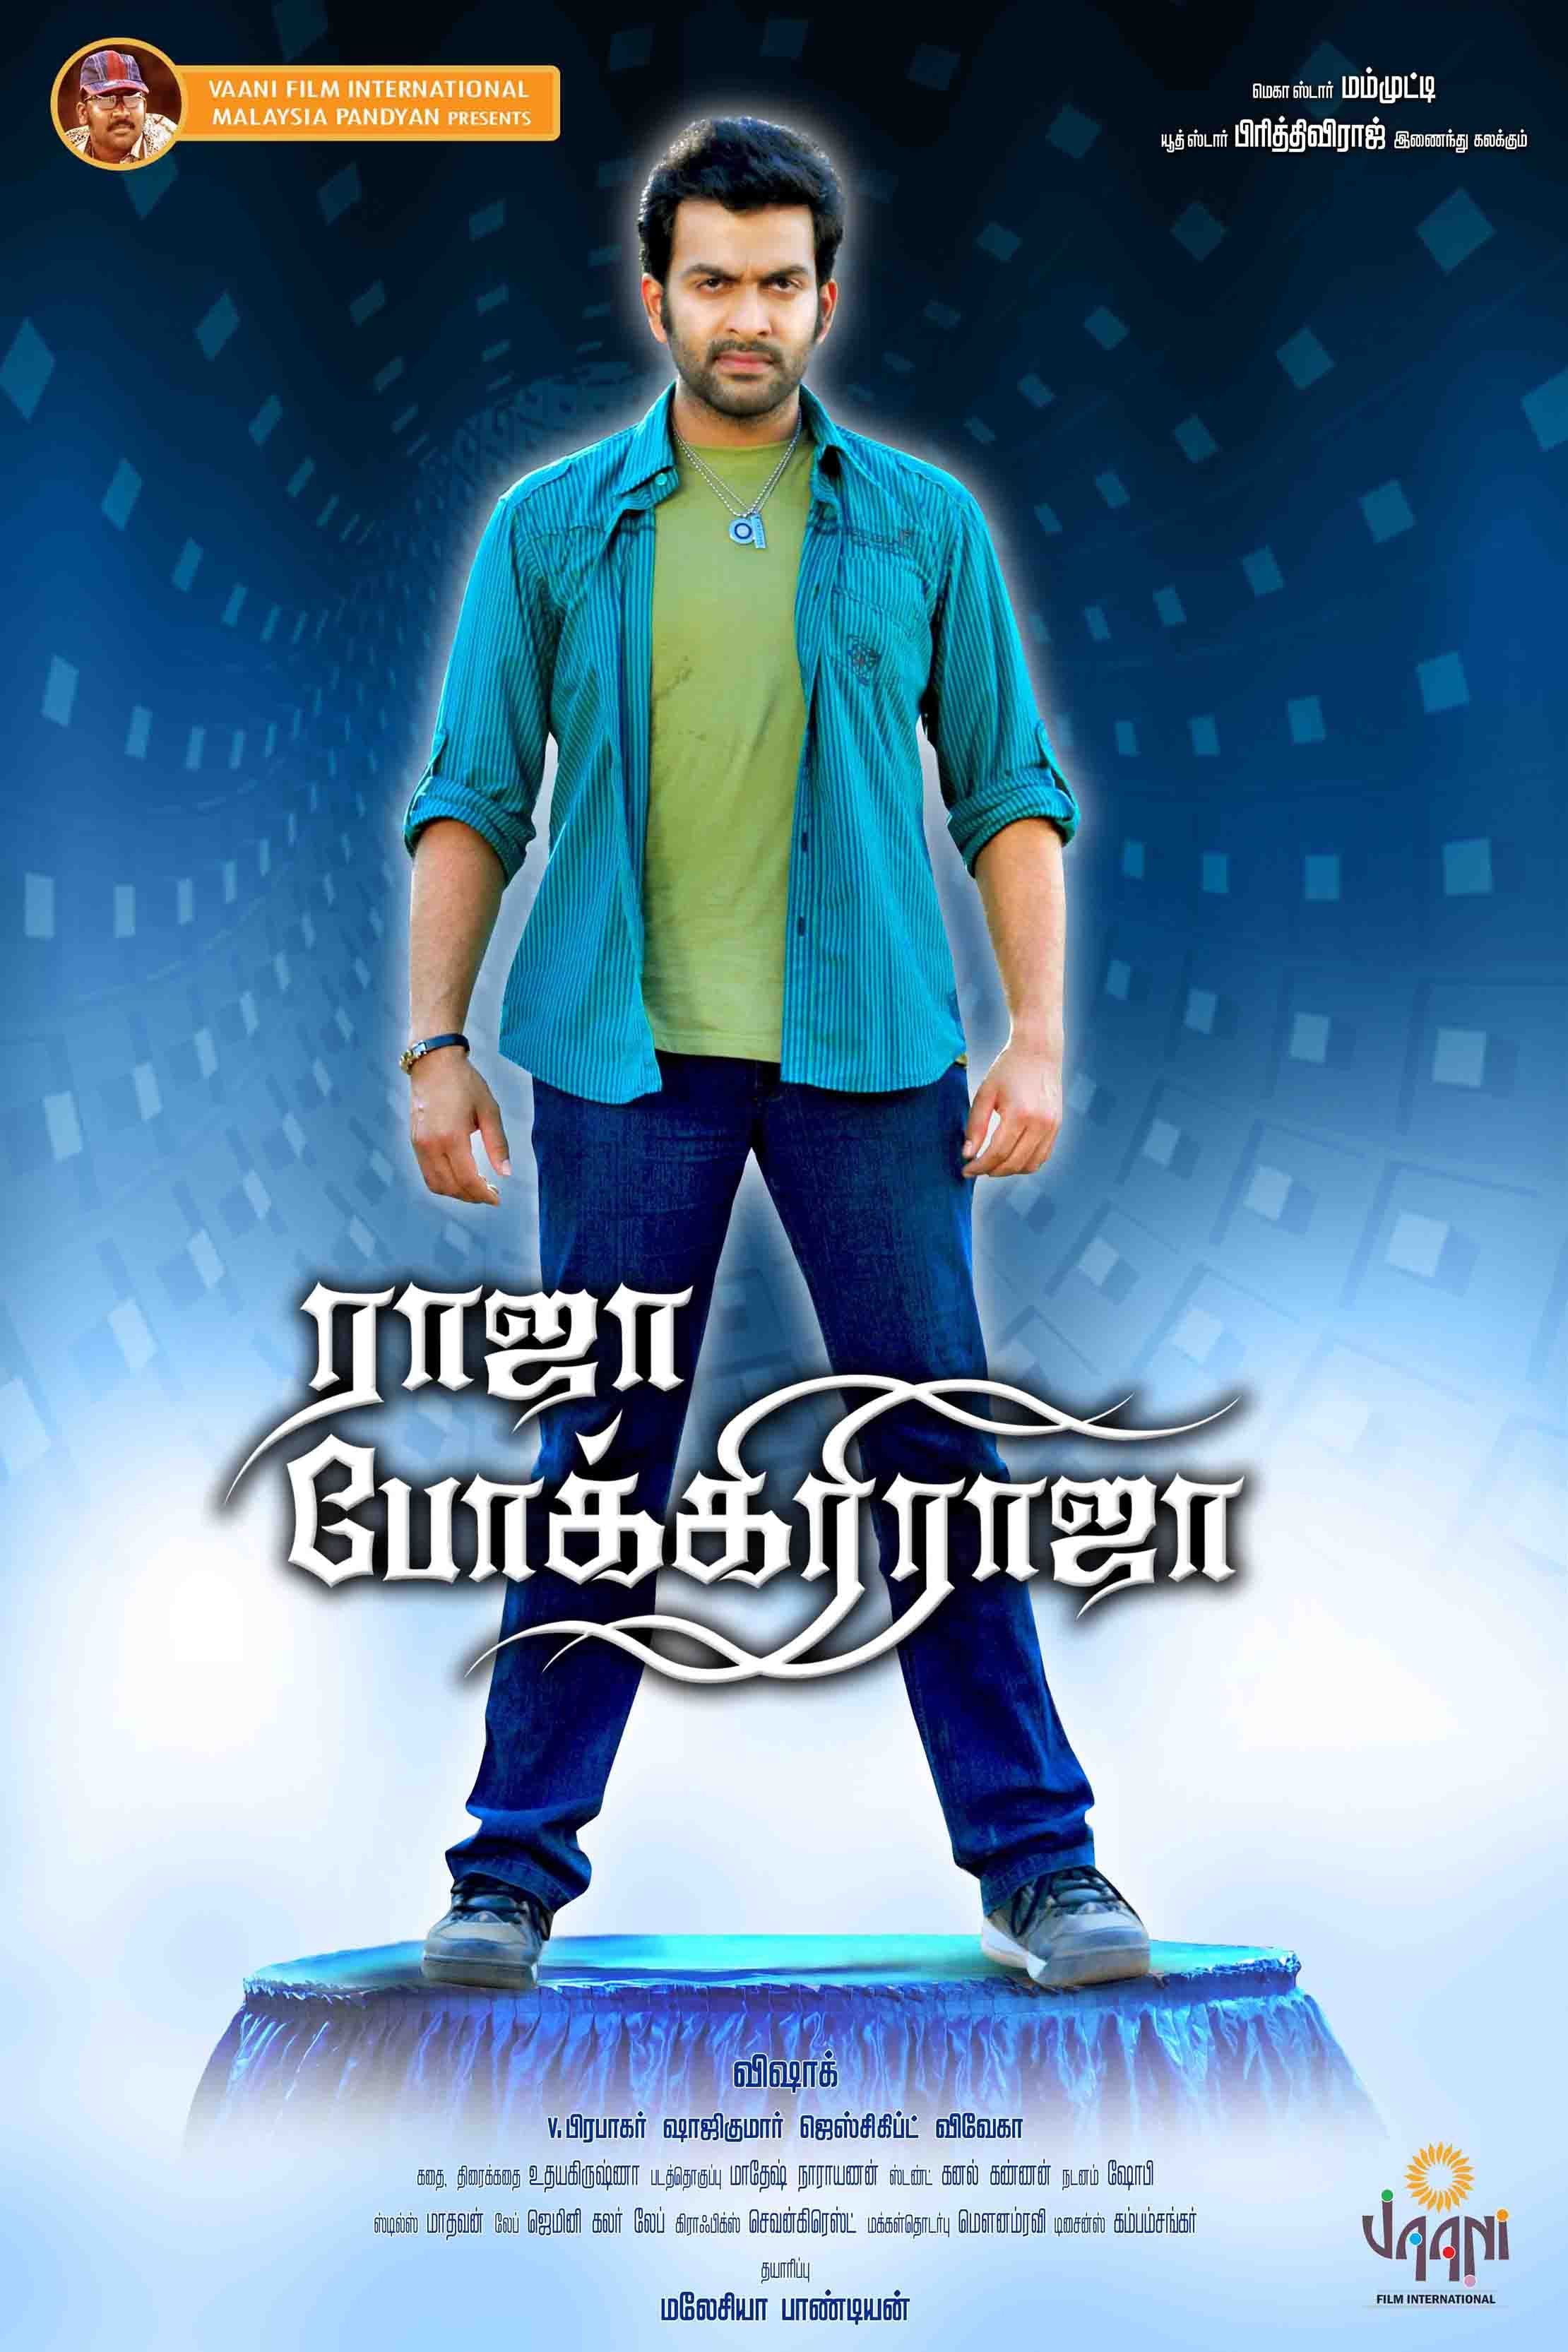 What is the gross collection of pokkiri raja Malayalam movie?